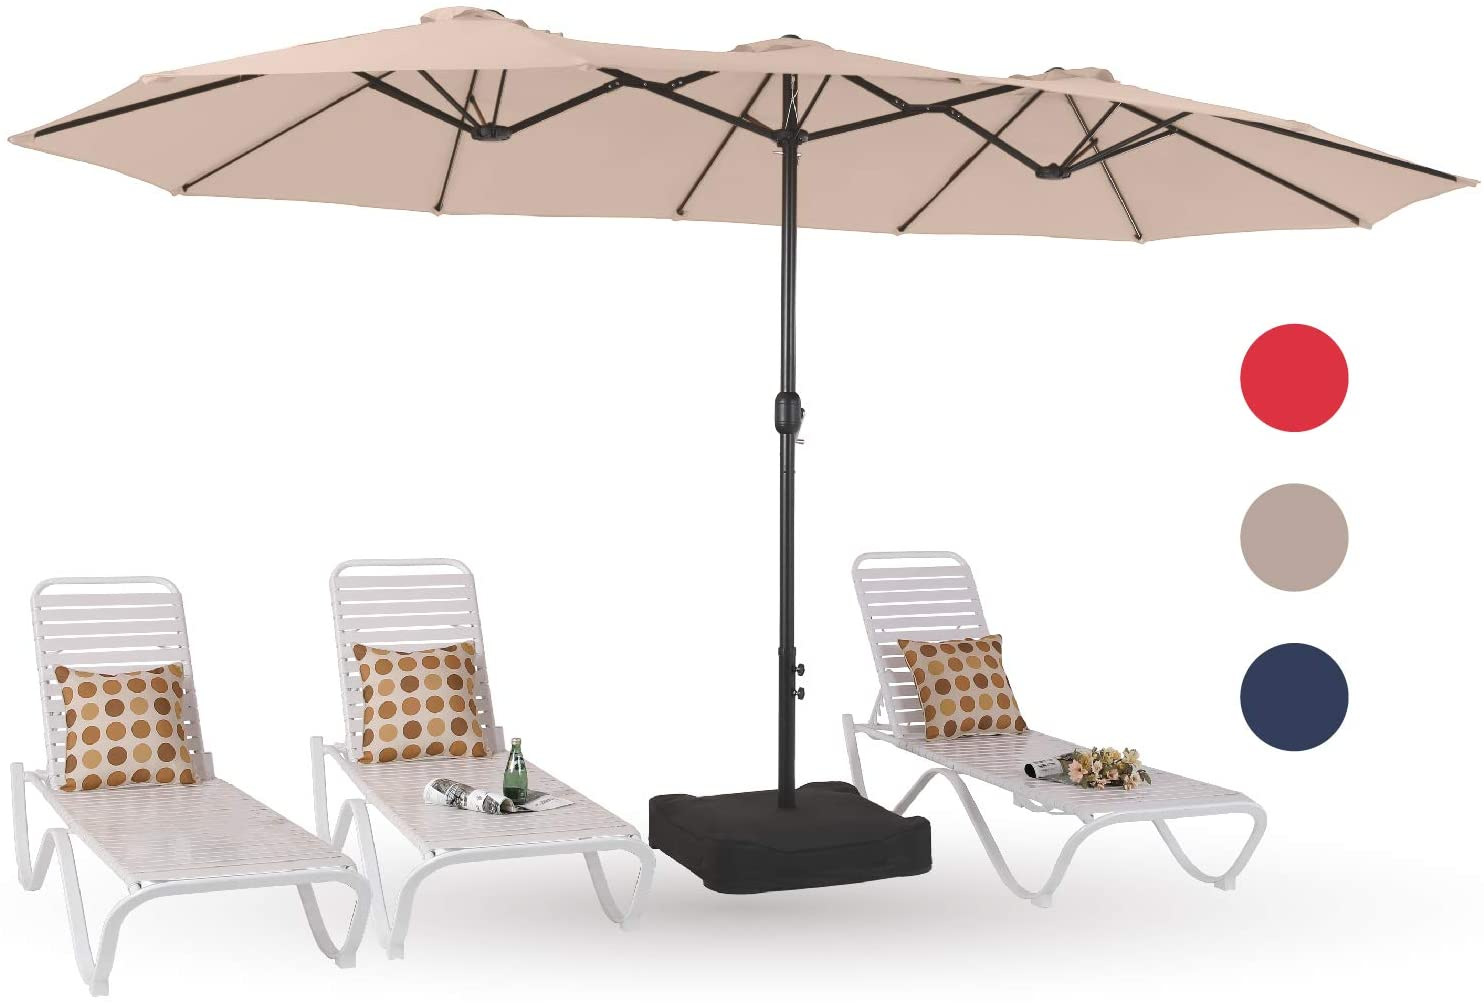 Phi Villa 15ft Patio Umbrella Double Sided Outdoor Market Extra Large Umbrella With Crank Umbrella Base Included Beige Garden Outdoor